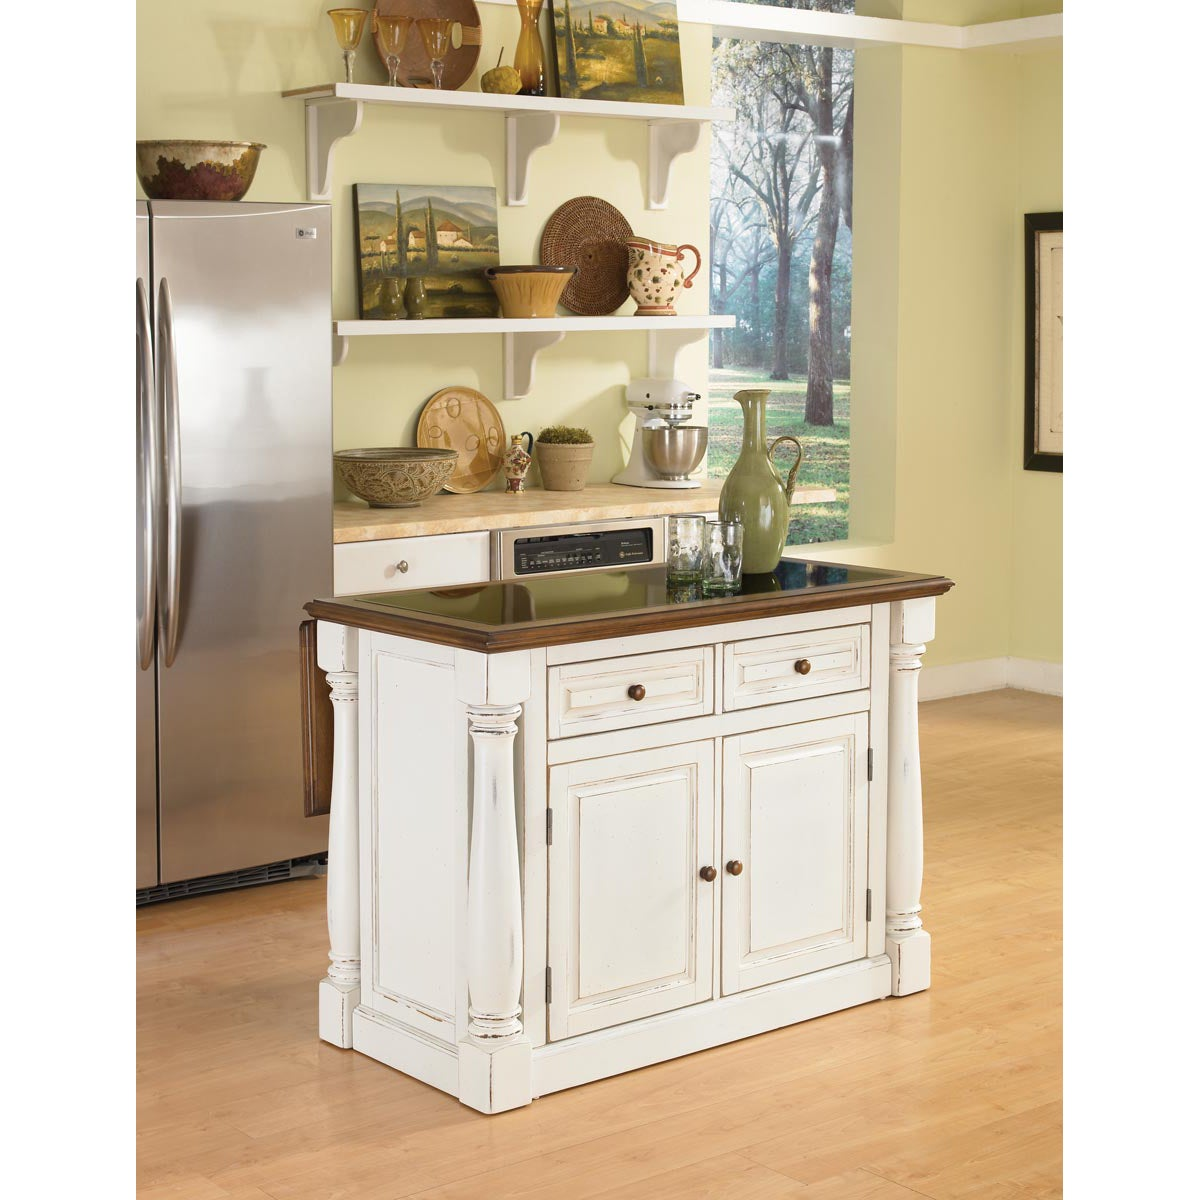 Shop Monarch Antiqued White Kitchen Island By Home Styles Overstock 6655286